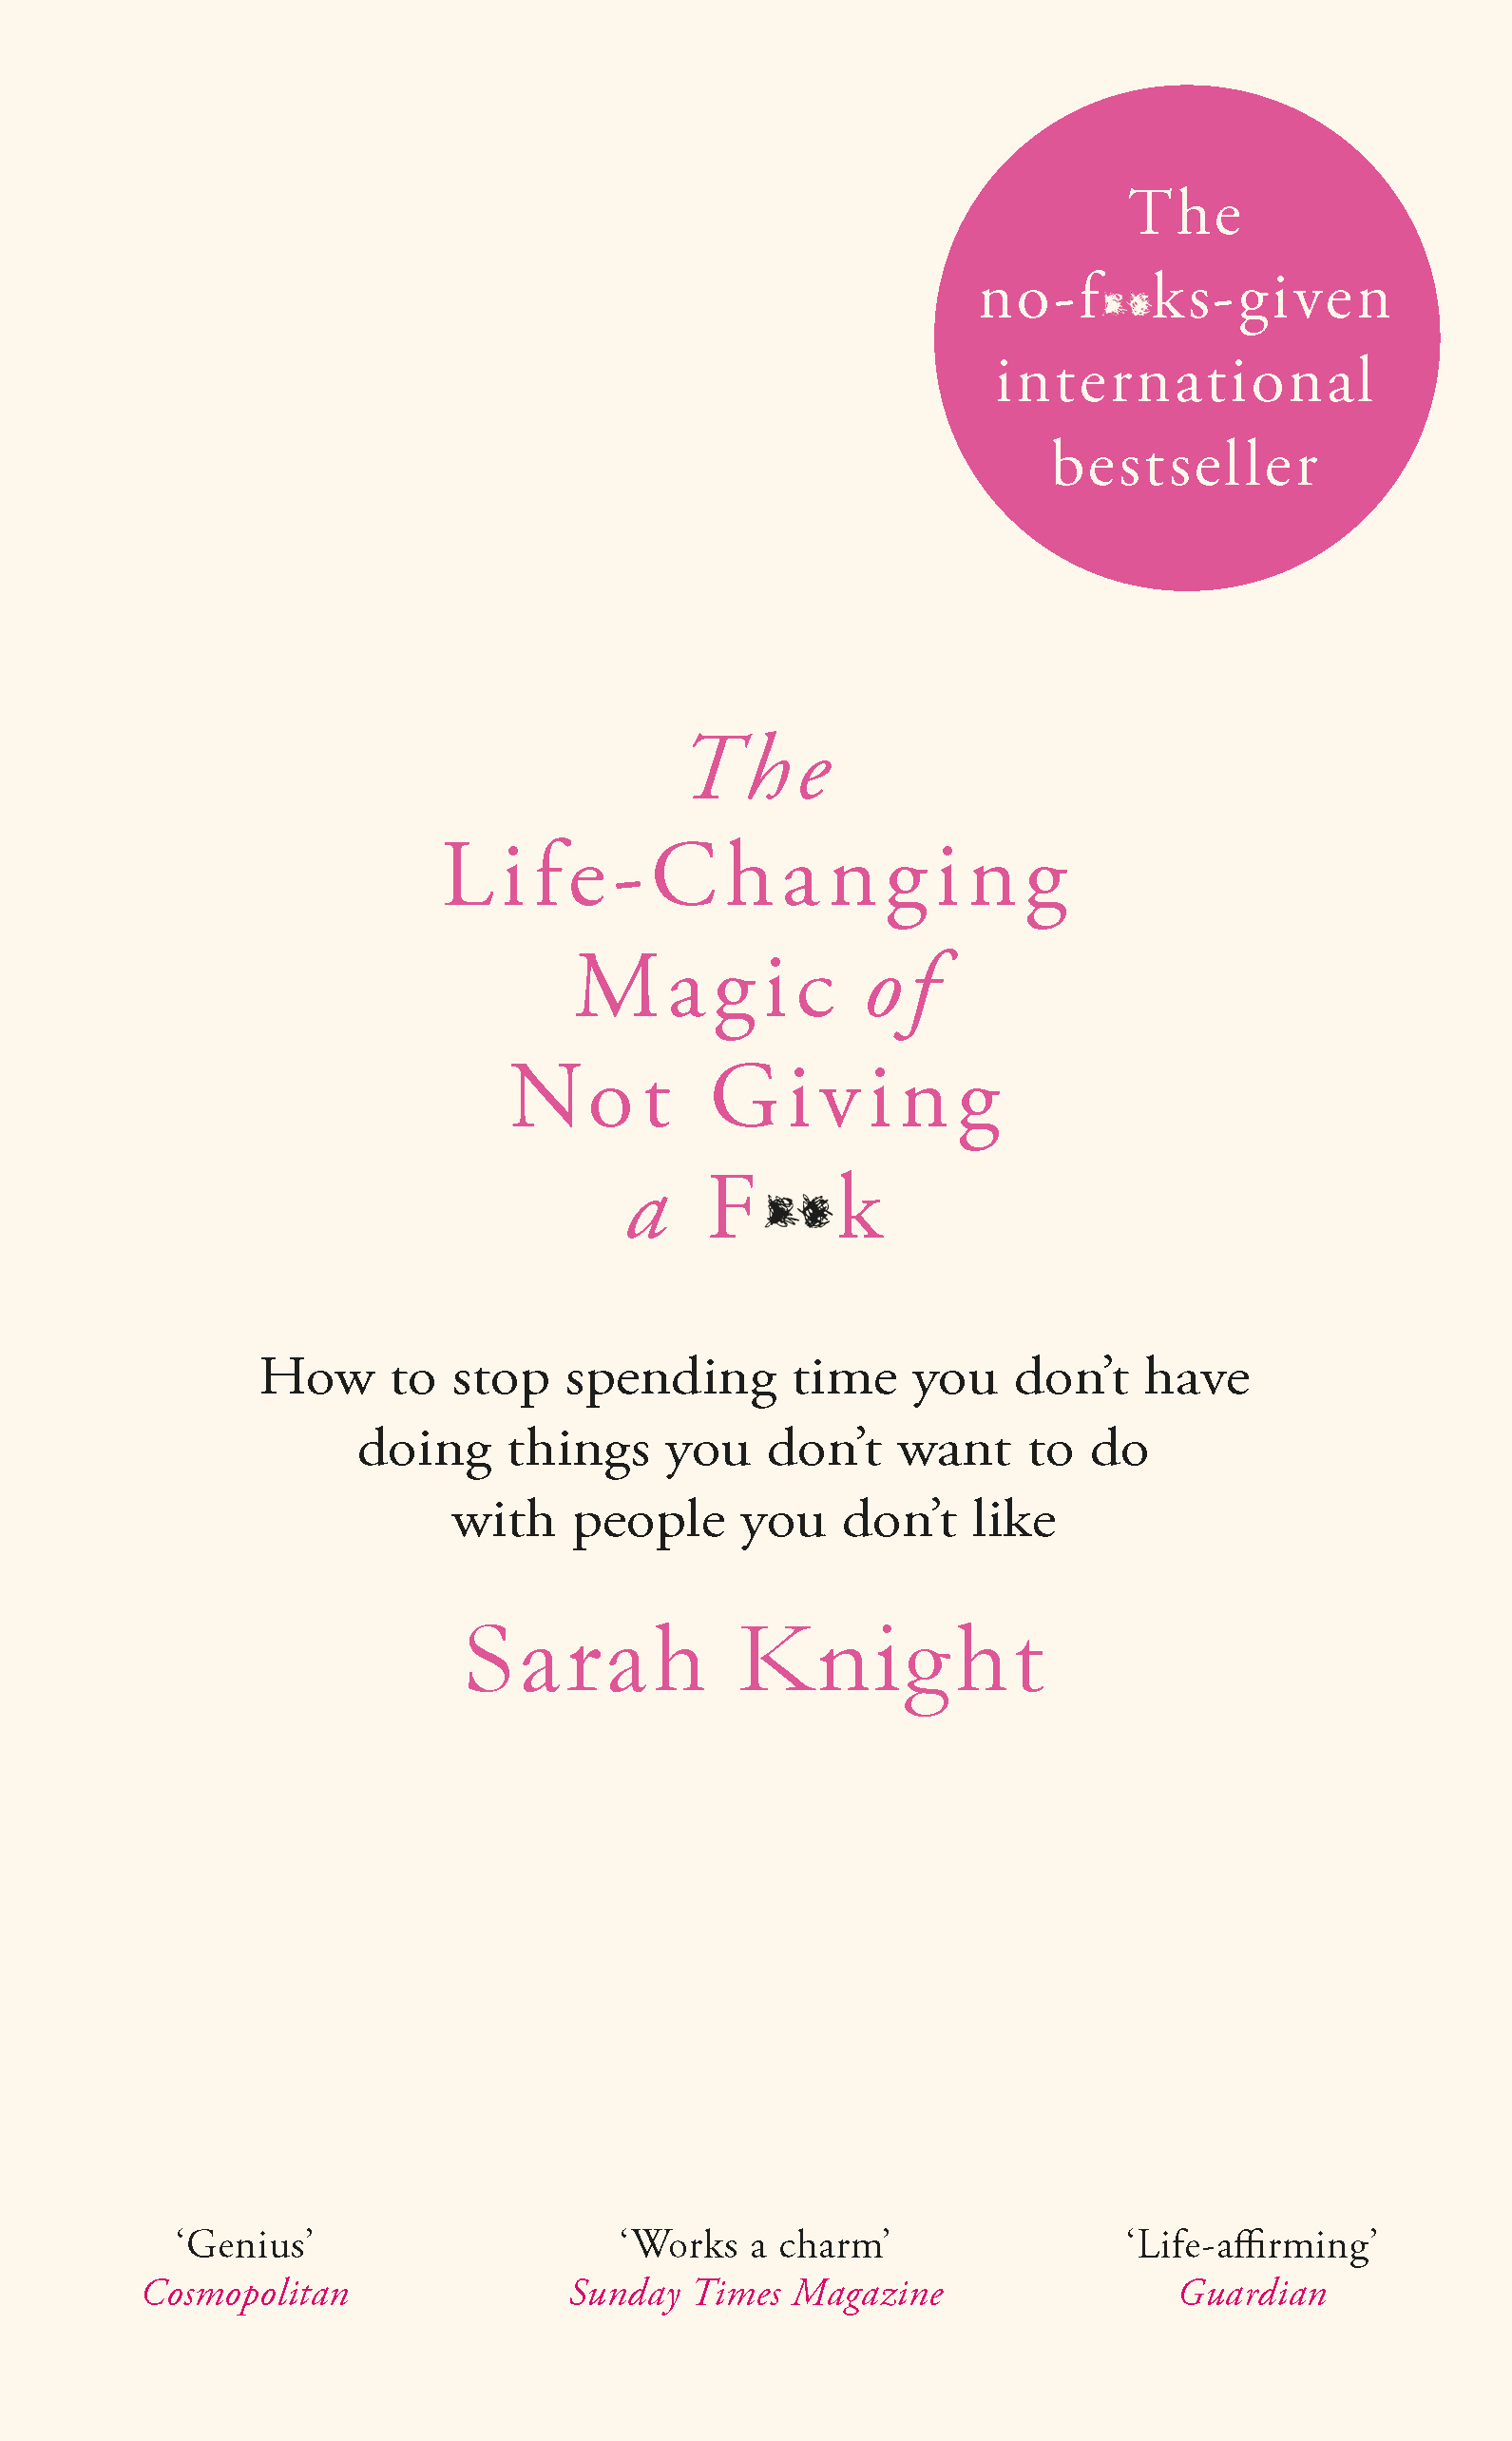 The Life-Changing Magic of Not Giving a F**k by Sarah Knight, ISBN: 9781784298470